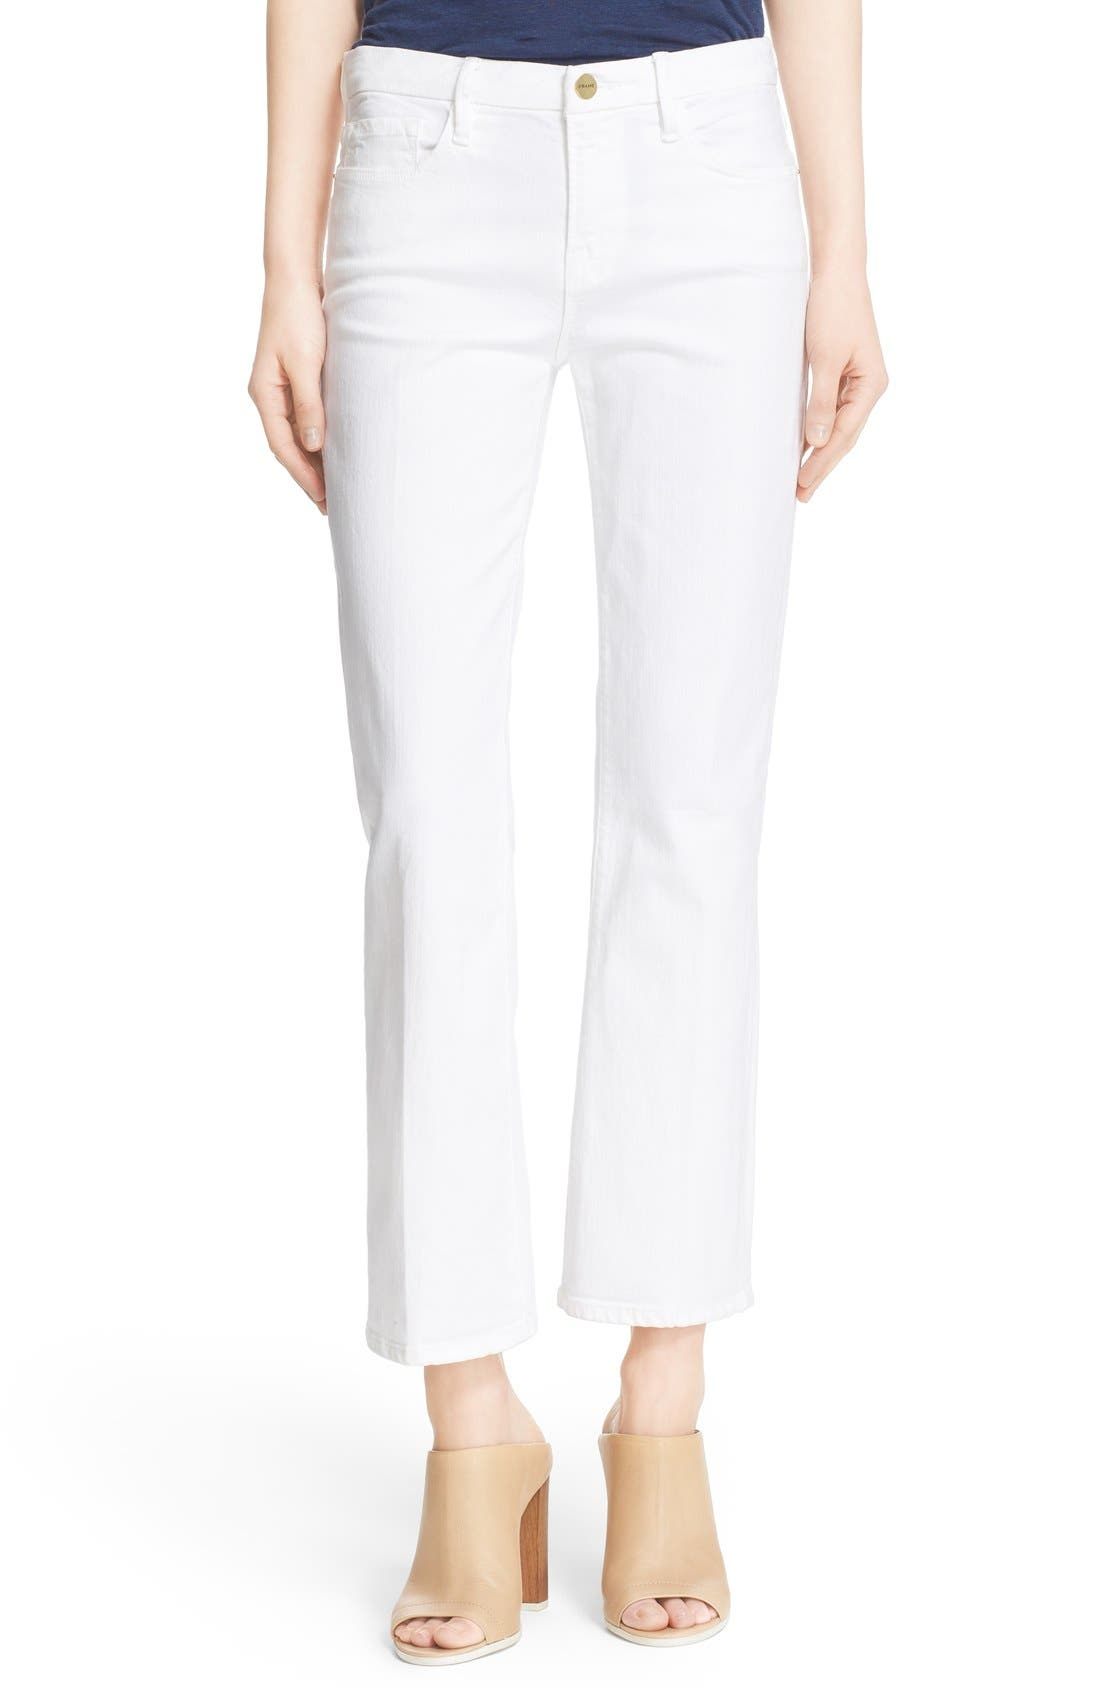 Alternate Image 1 Selected - FRAME 'Le Crop Mini Boot' Crop Jeans (Blanc)